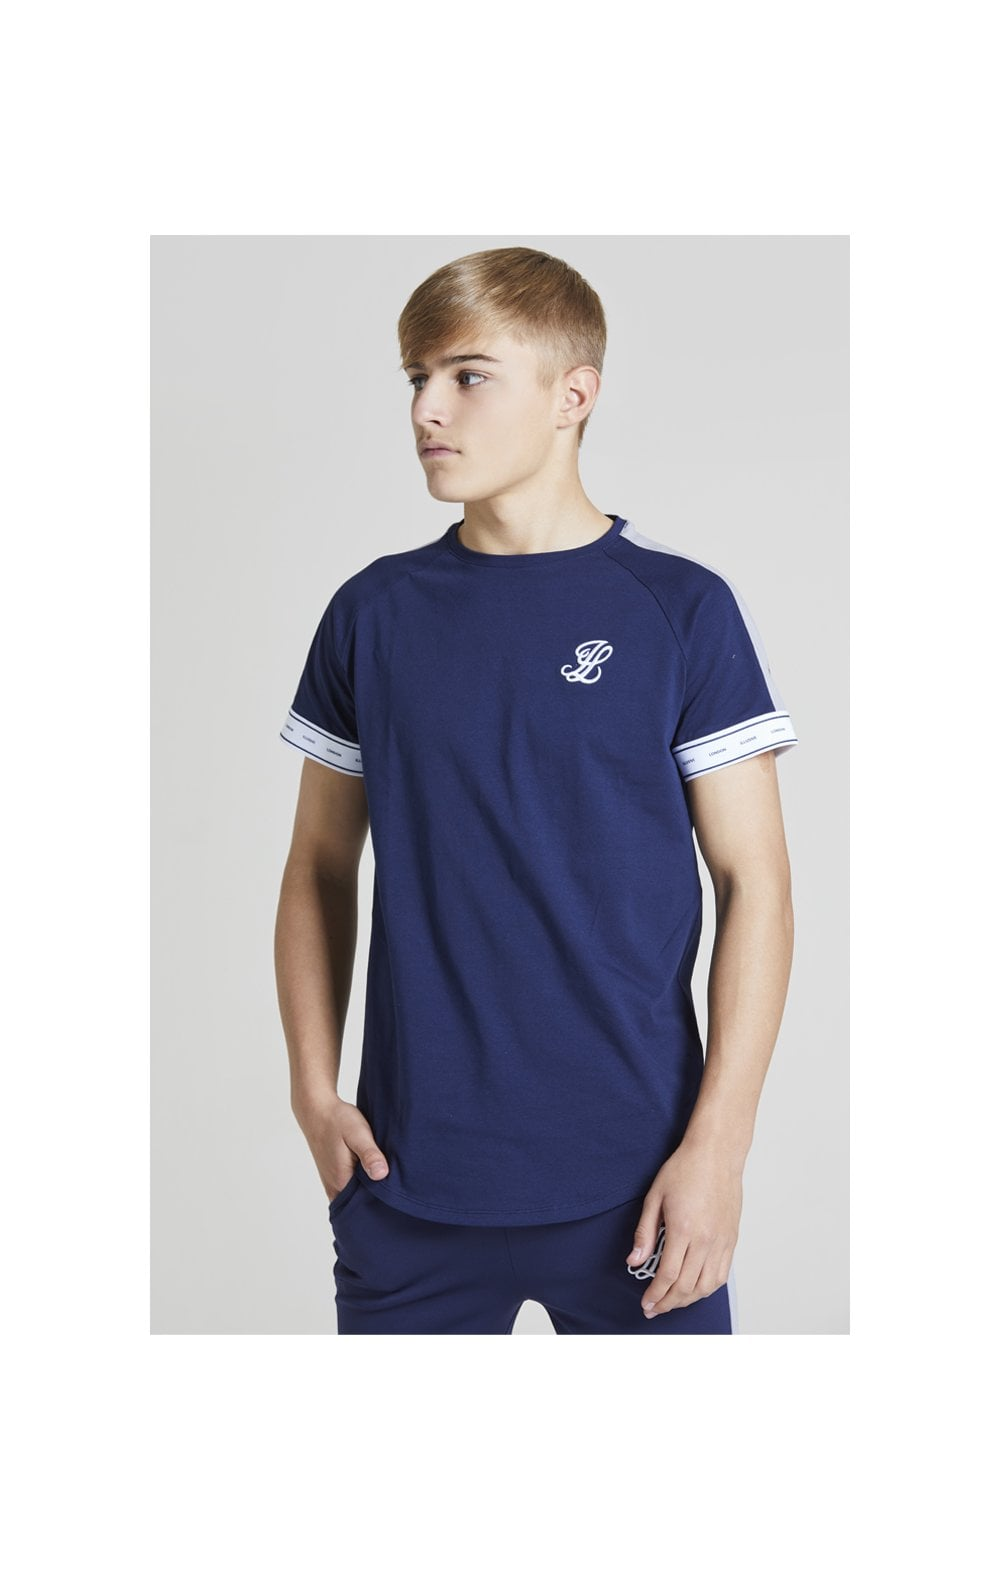 Illusive London Technical T-Shirt Platten - Marineblau und Grau (1)